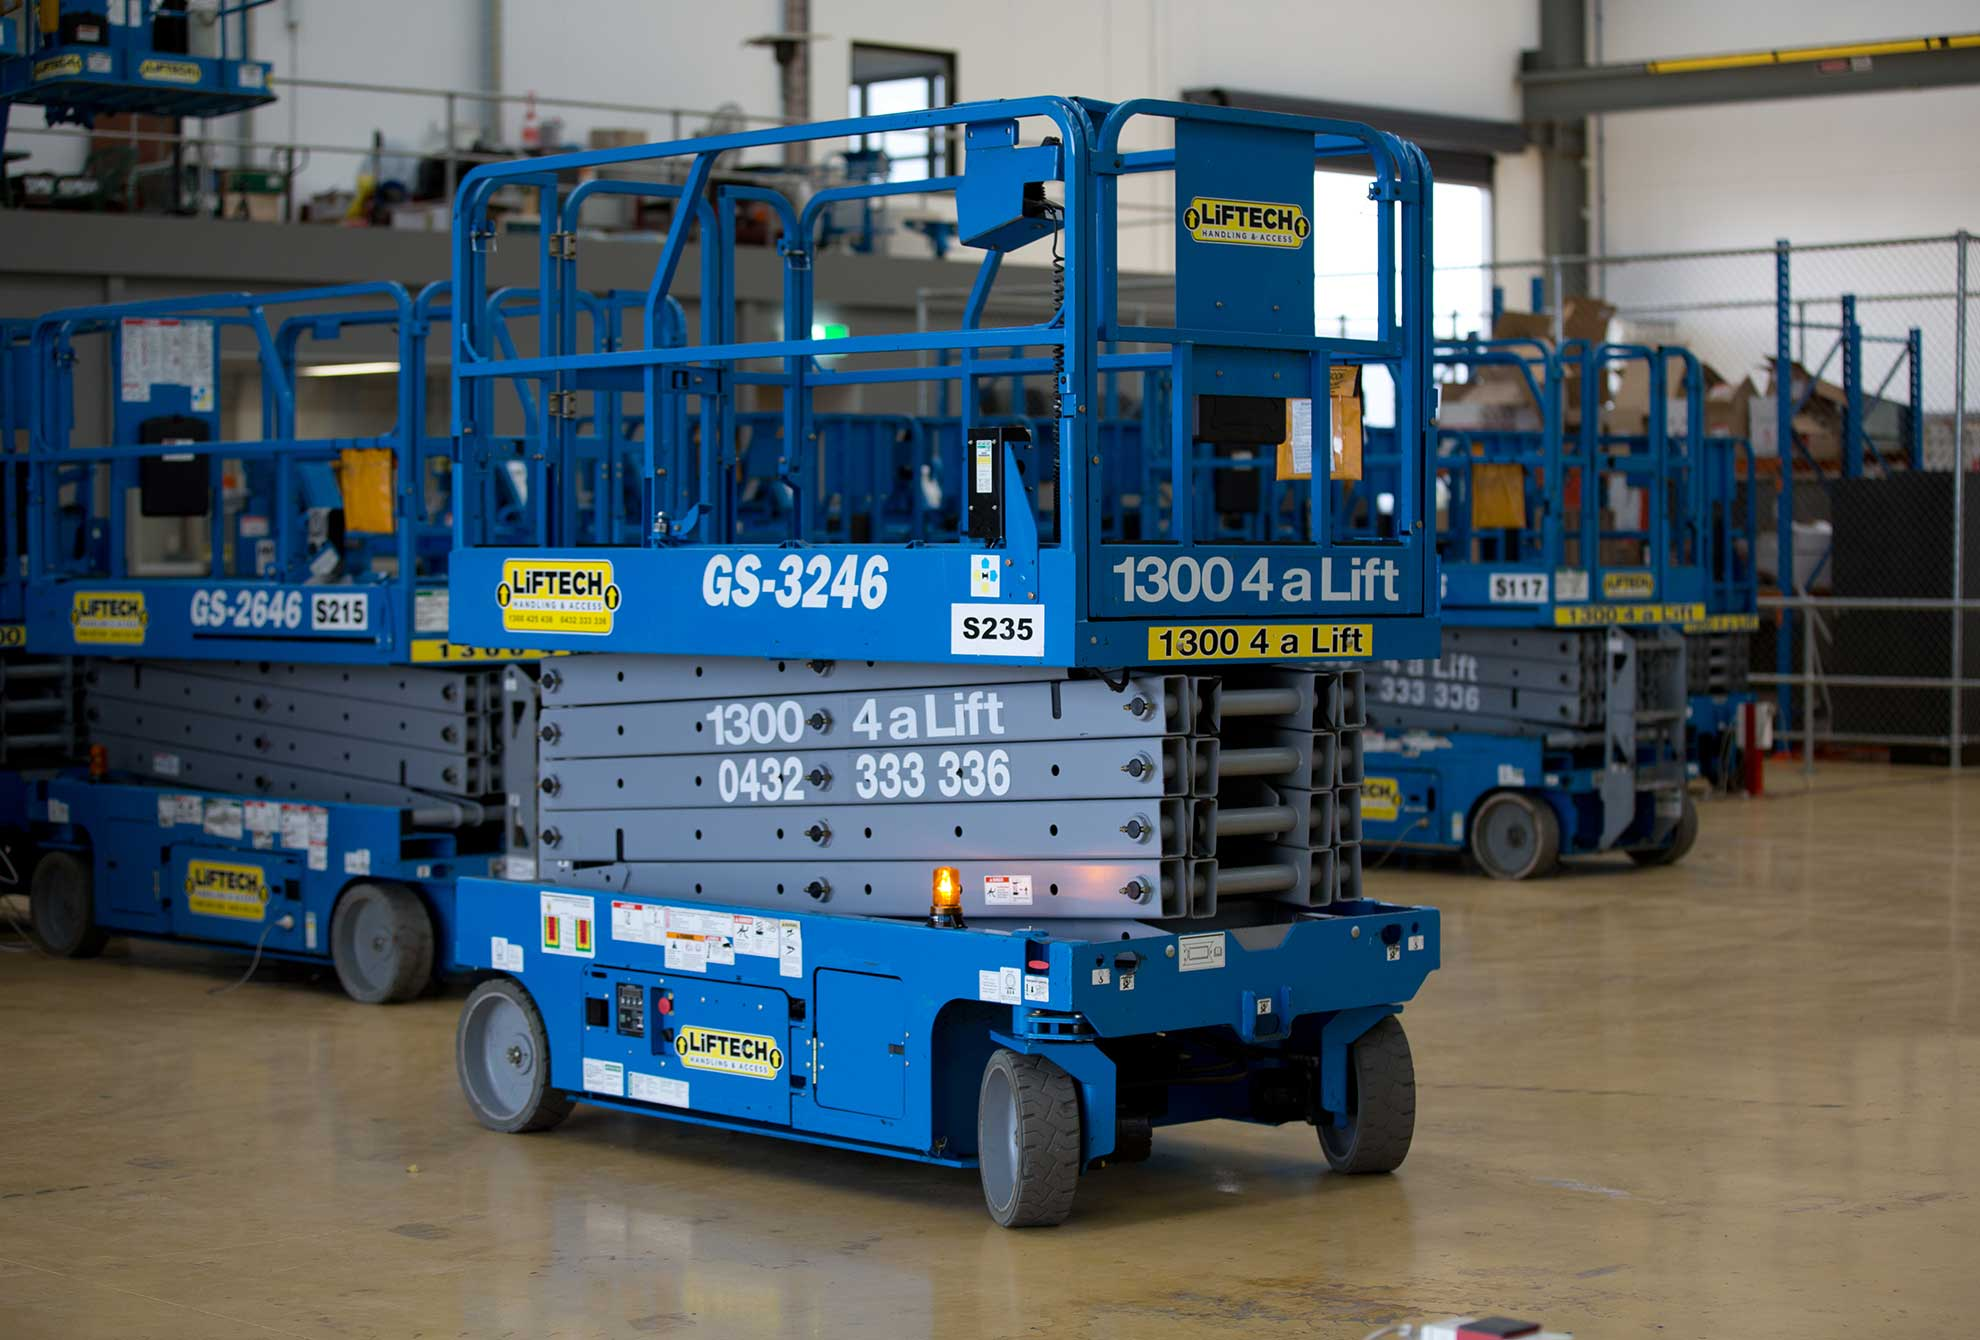 hire 3246e scissor lift